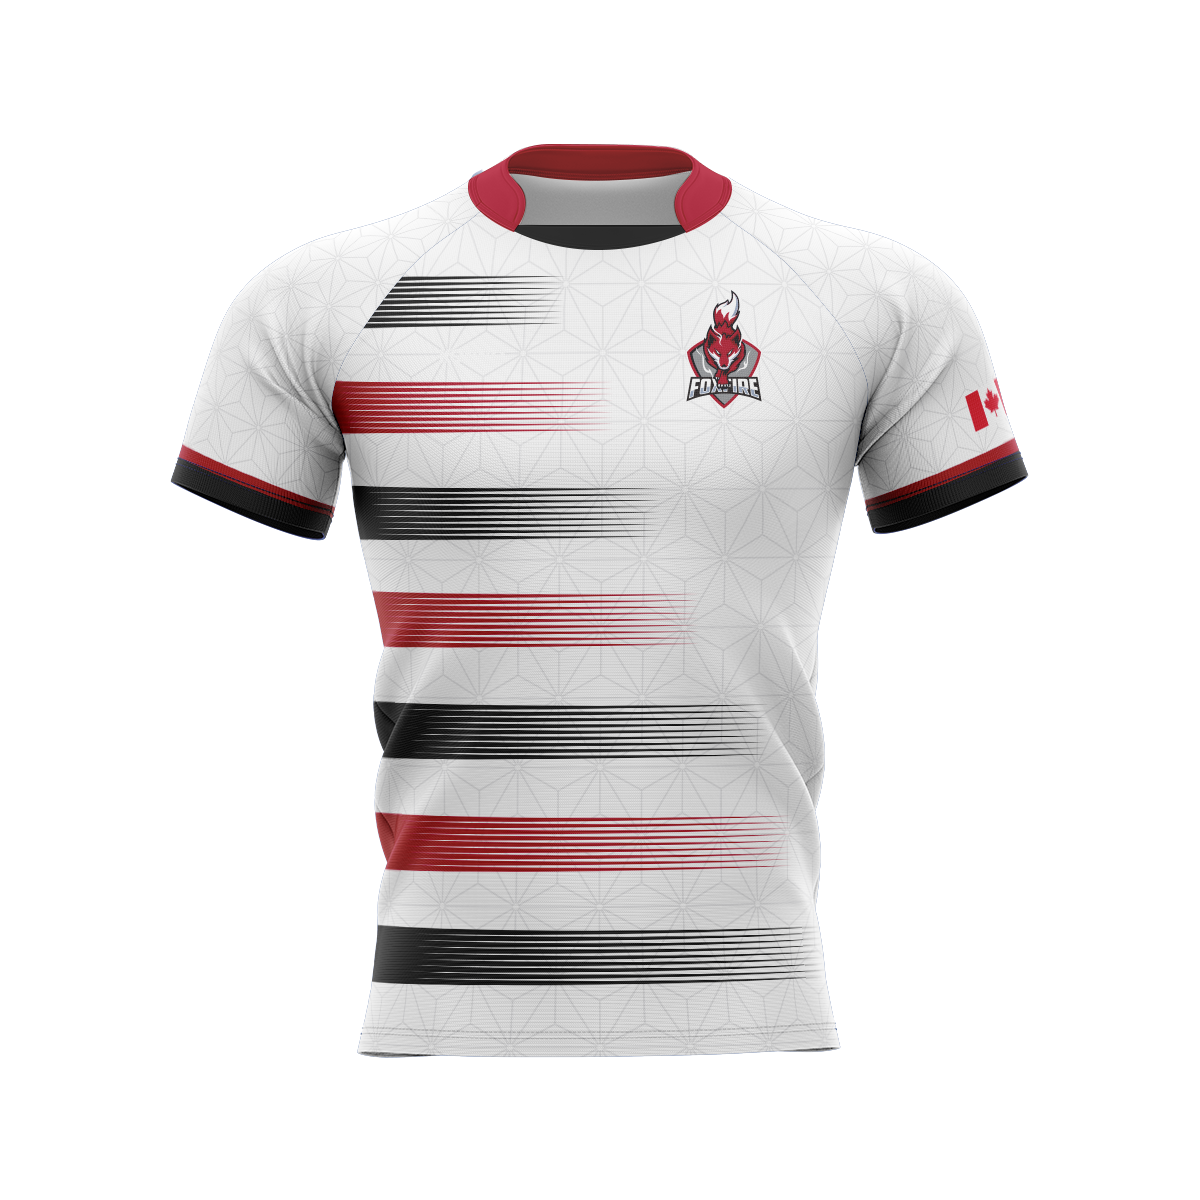 Prowler Rugby Jersey